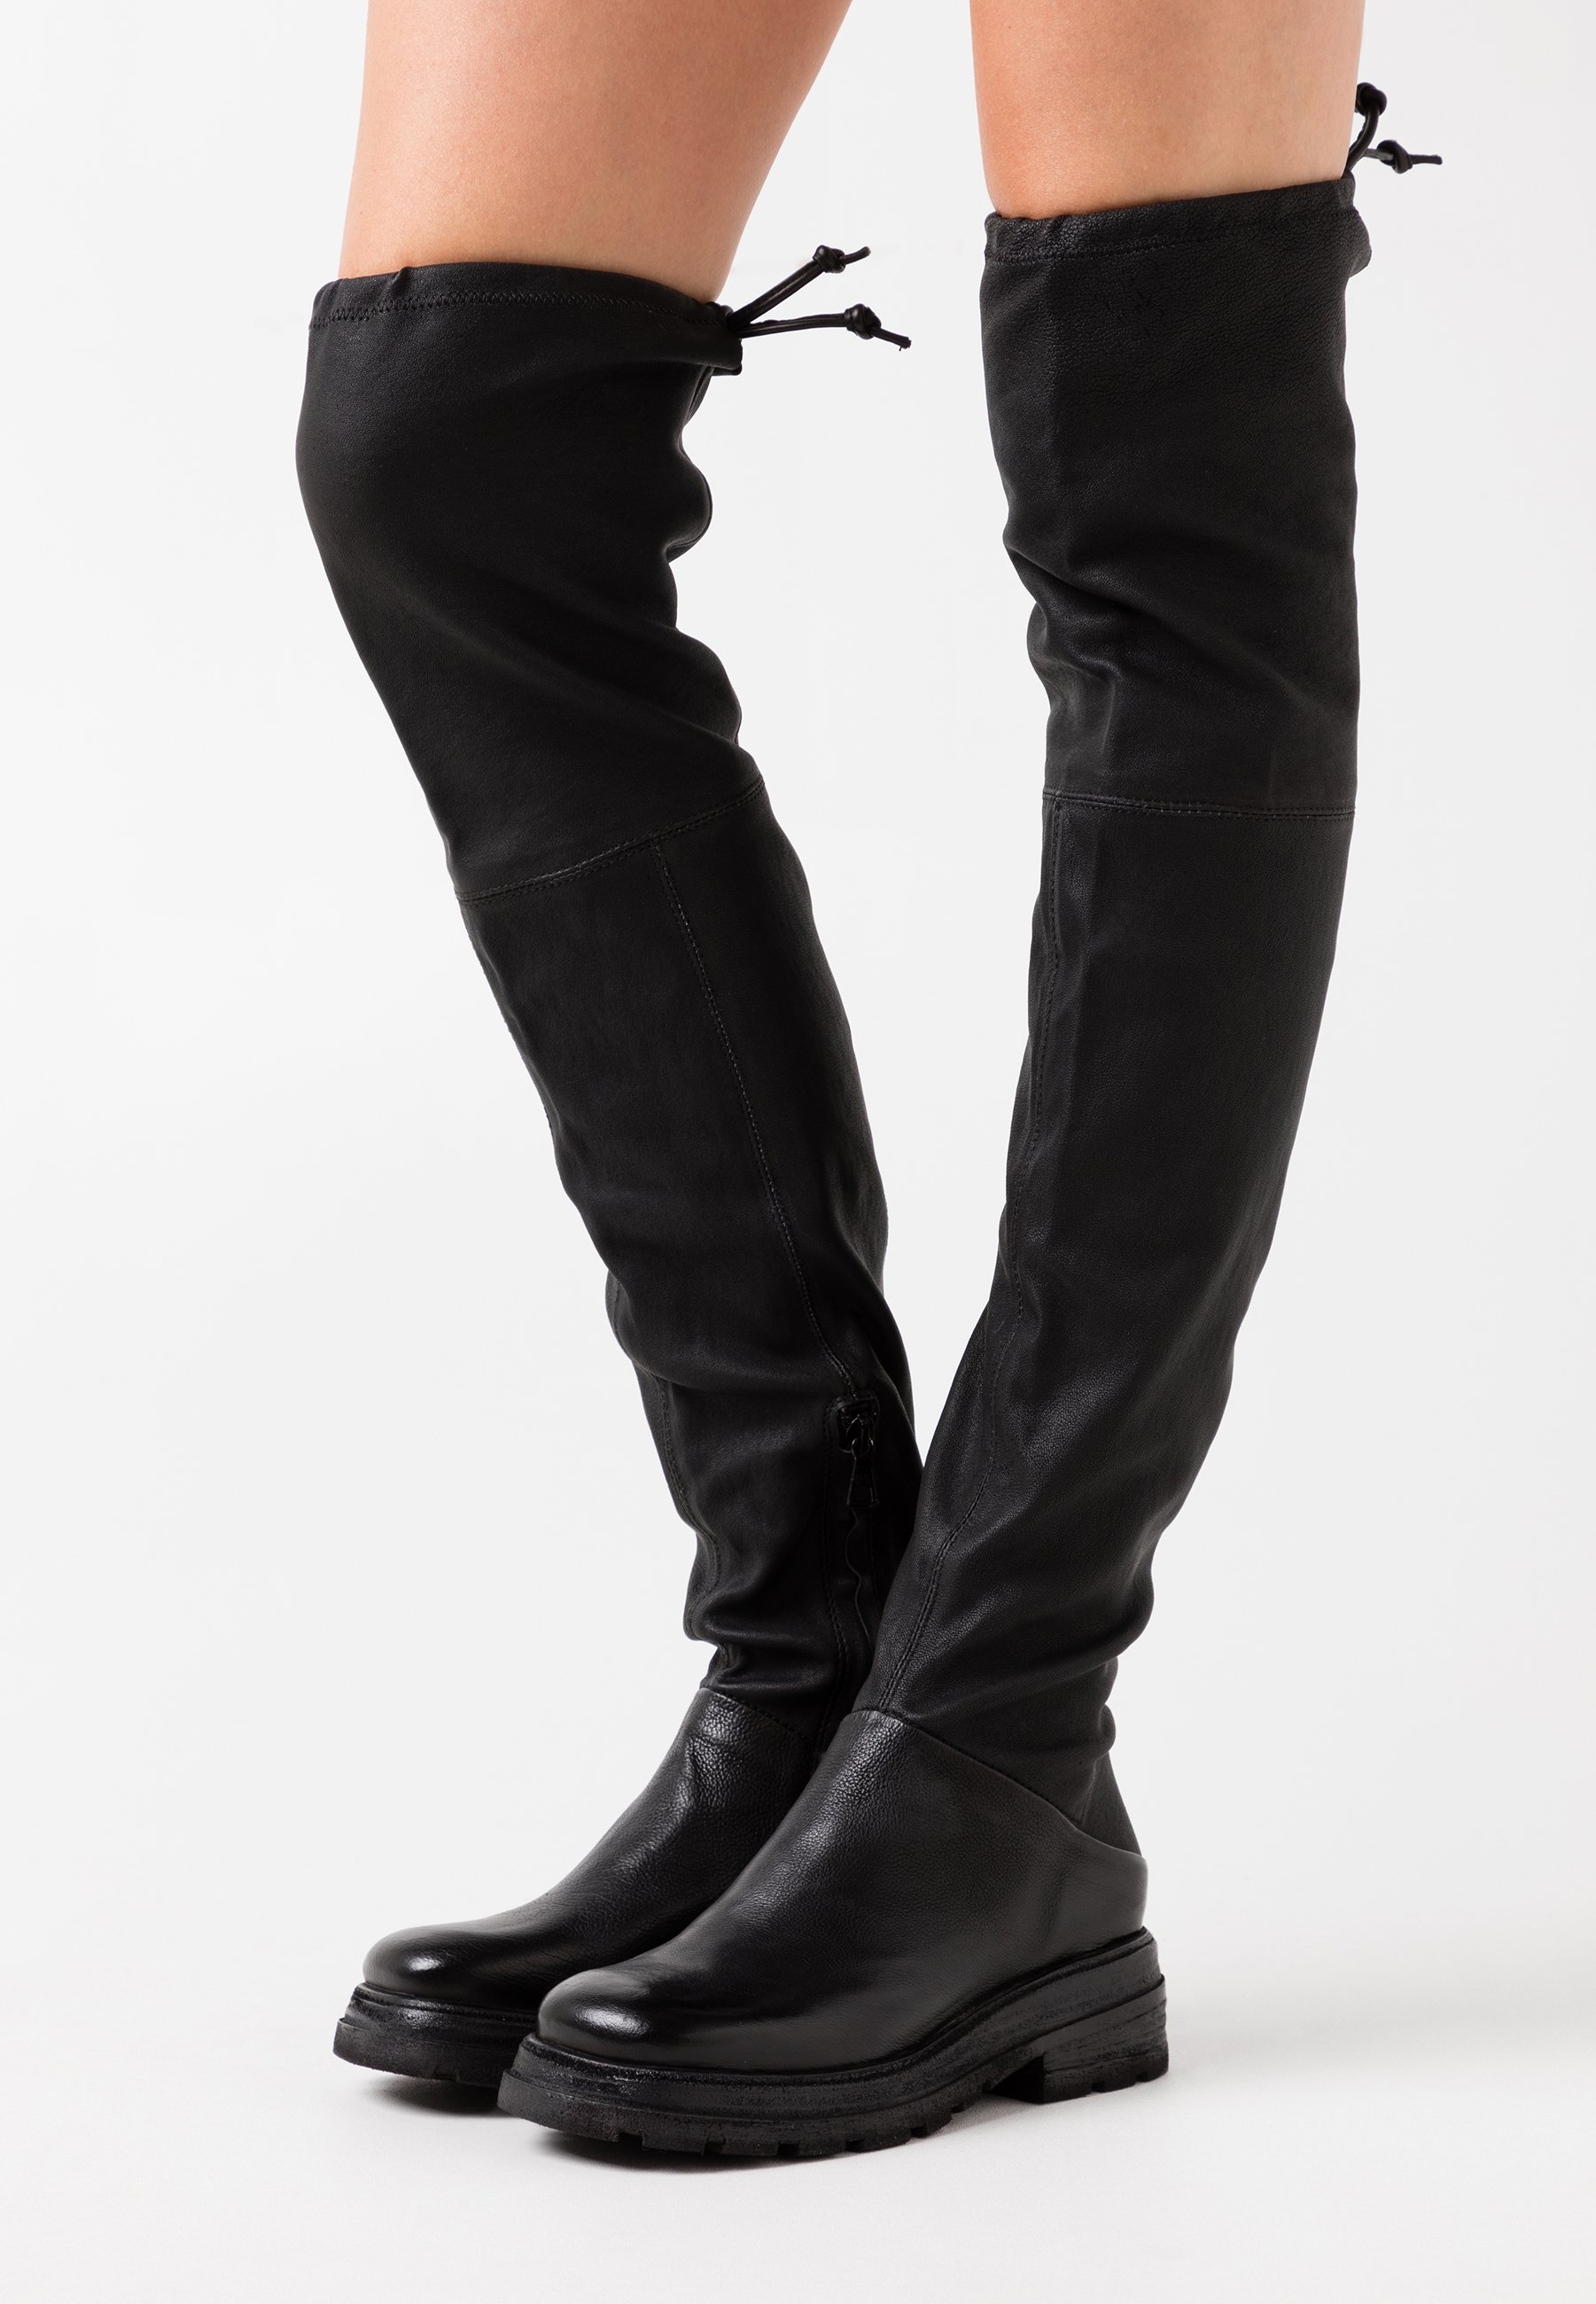 For Sale Women's Shoes A.S.98 Over-the-knee boots nero M18BGTTZT